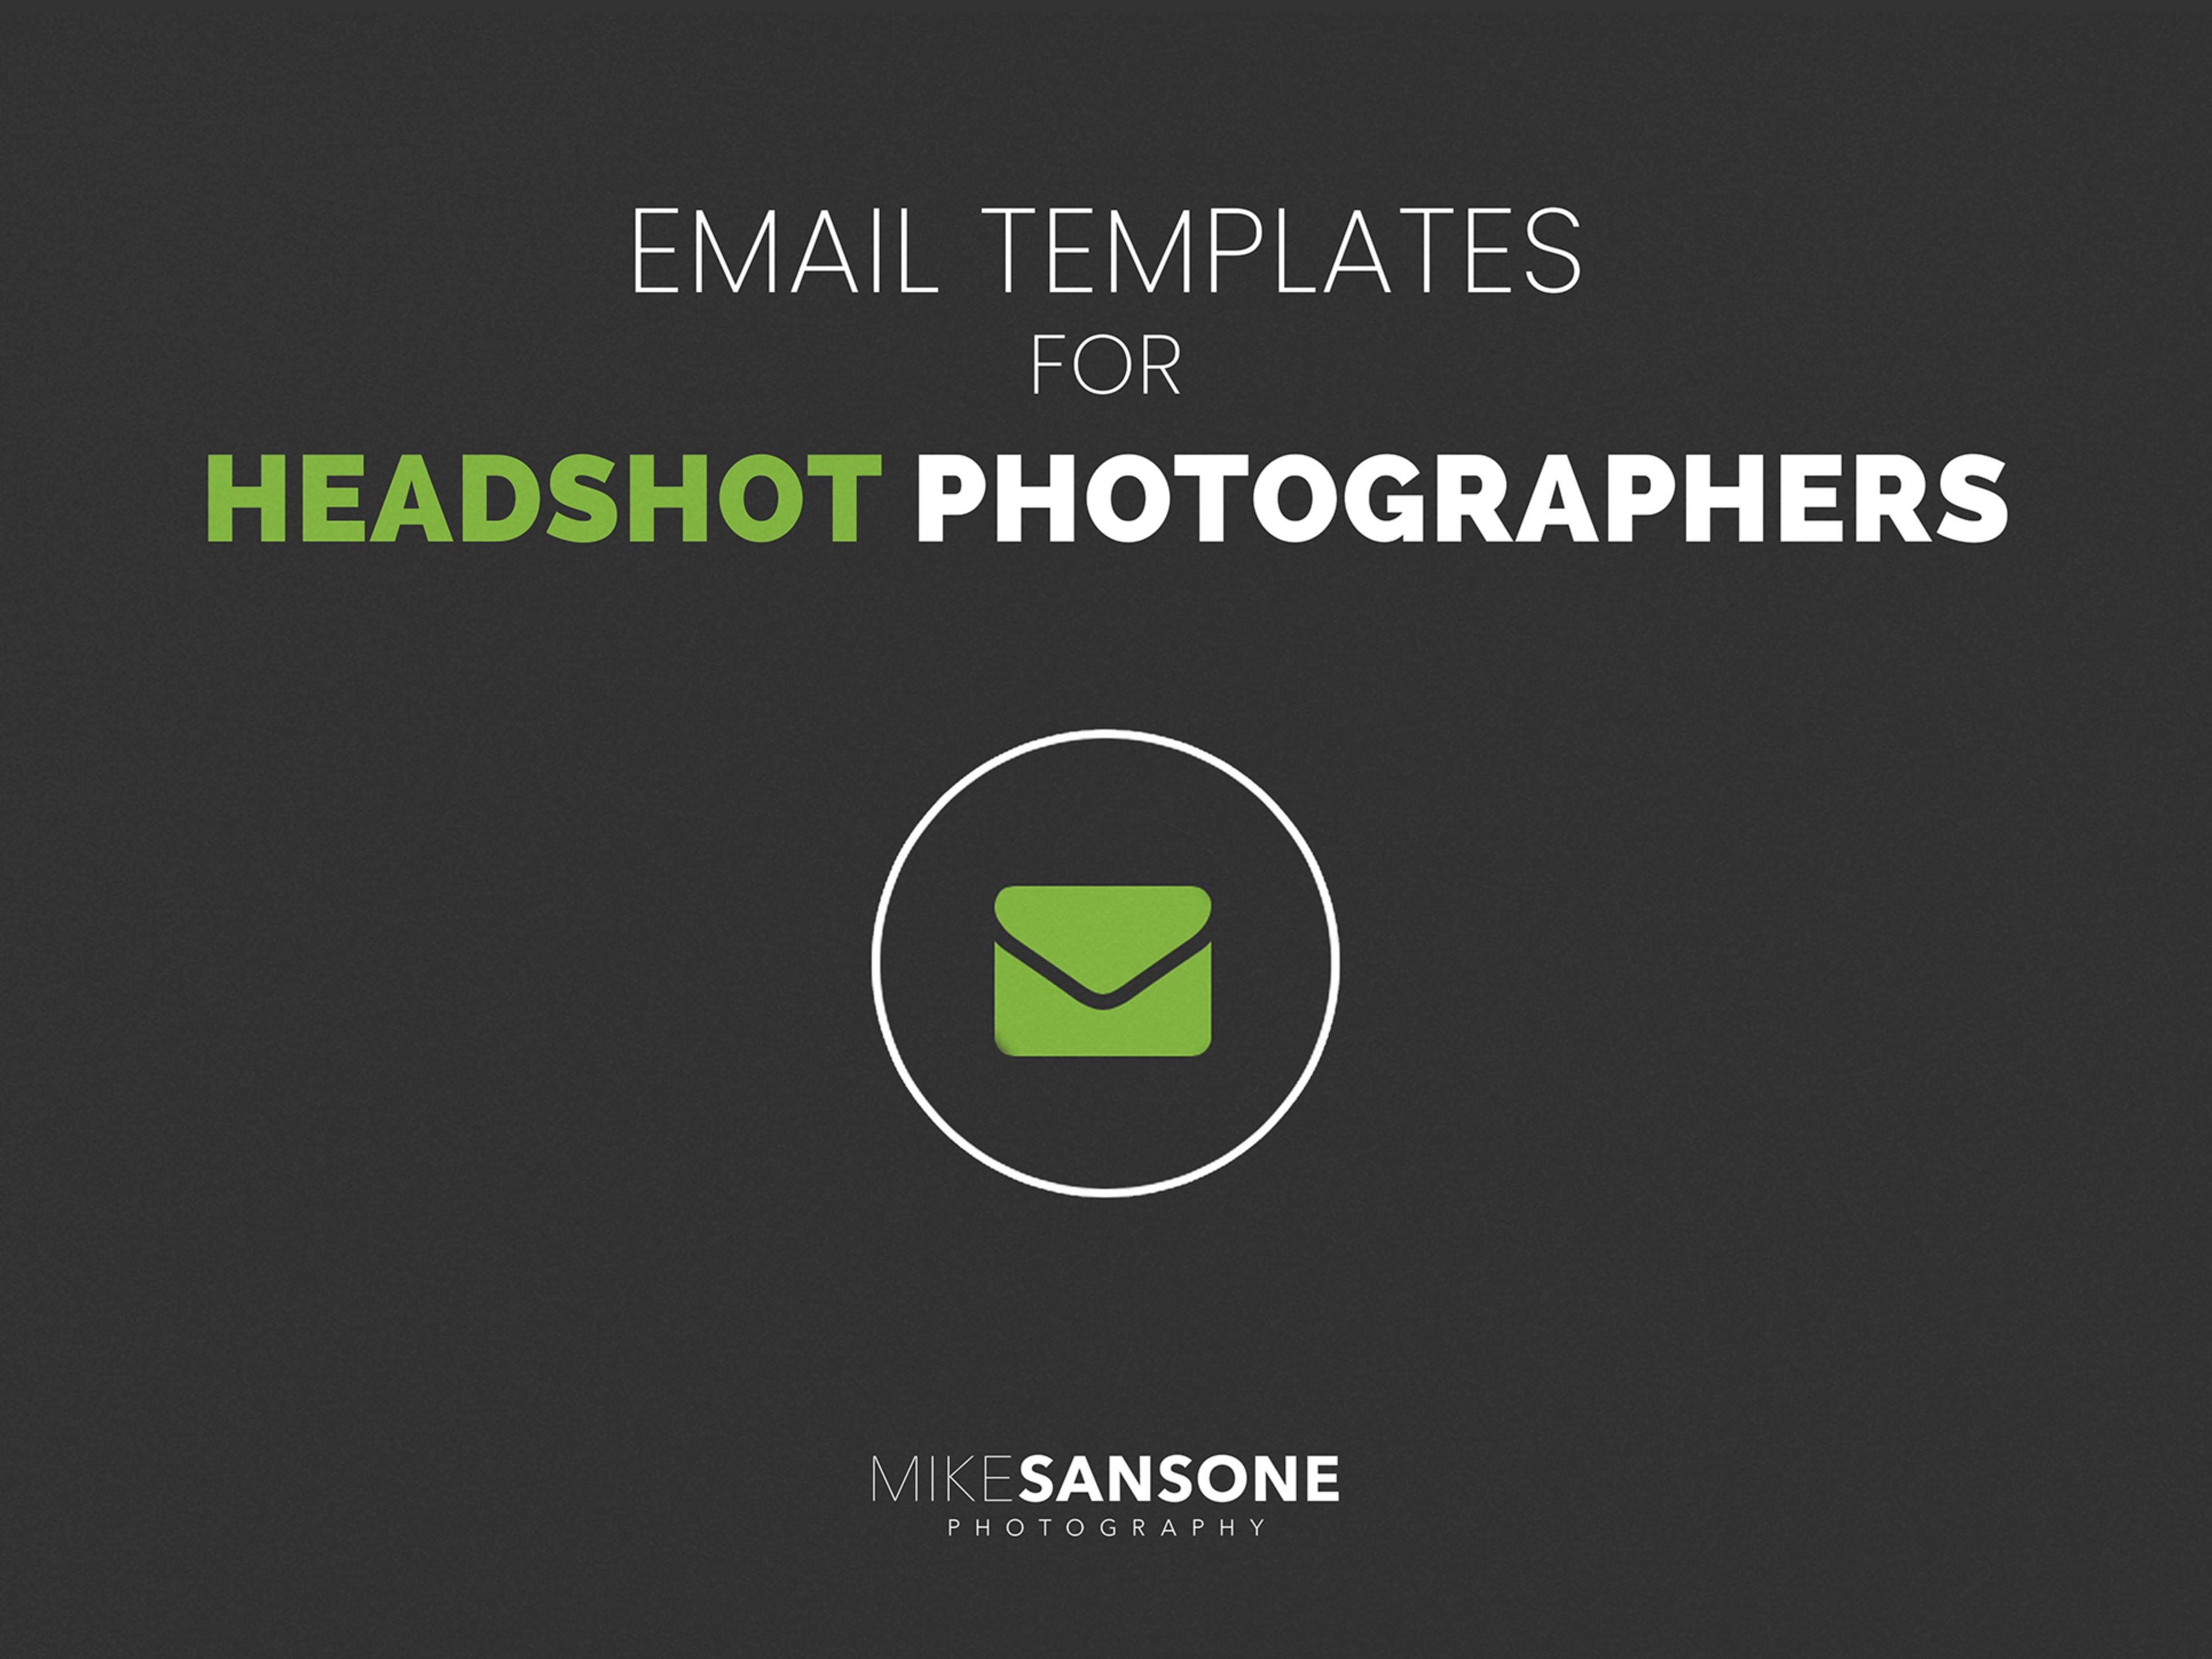 Email Templates For Headshot Photographers